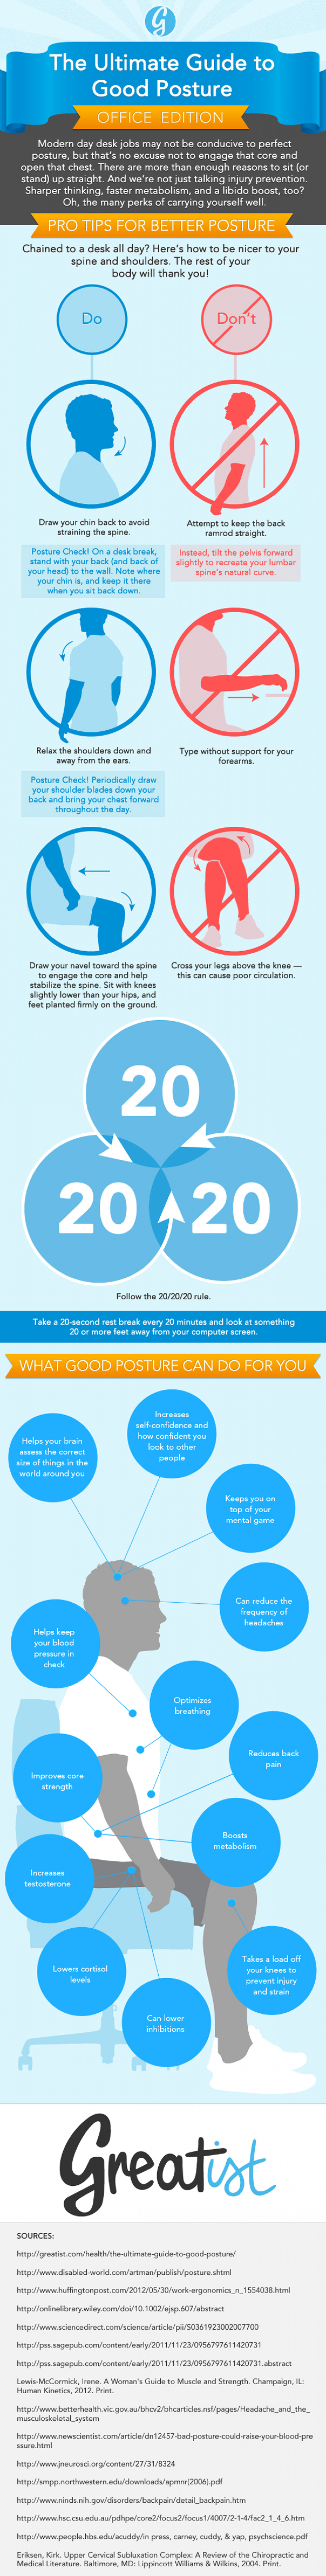 The Ultimate Guide to Good Posture at Work Infographic